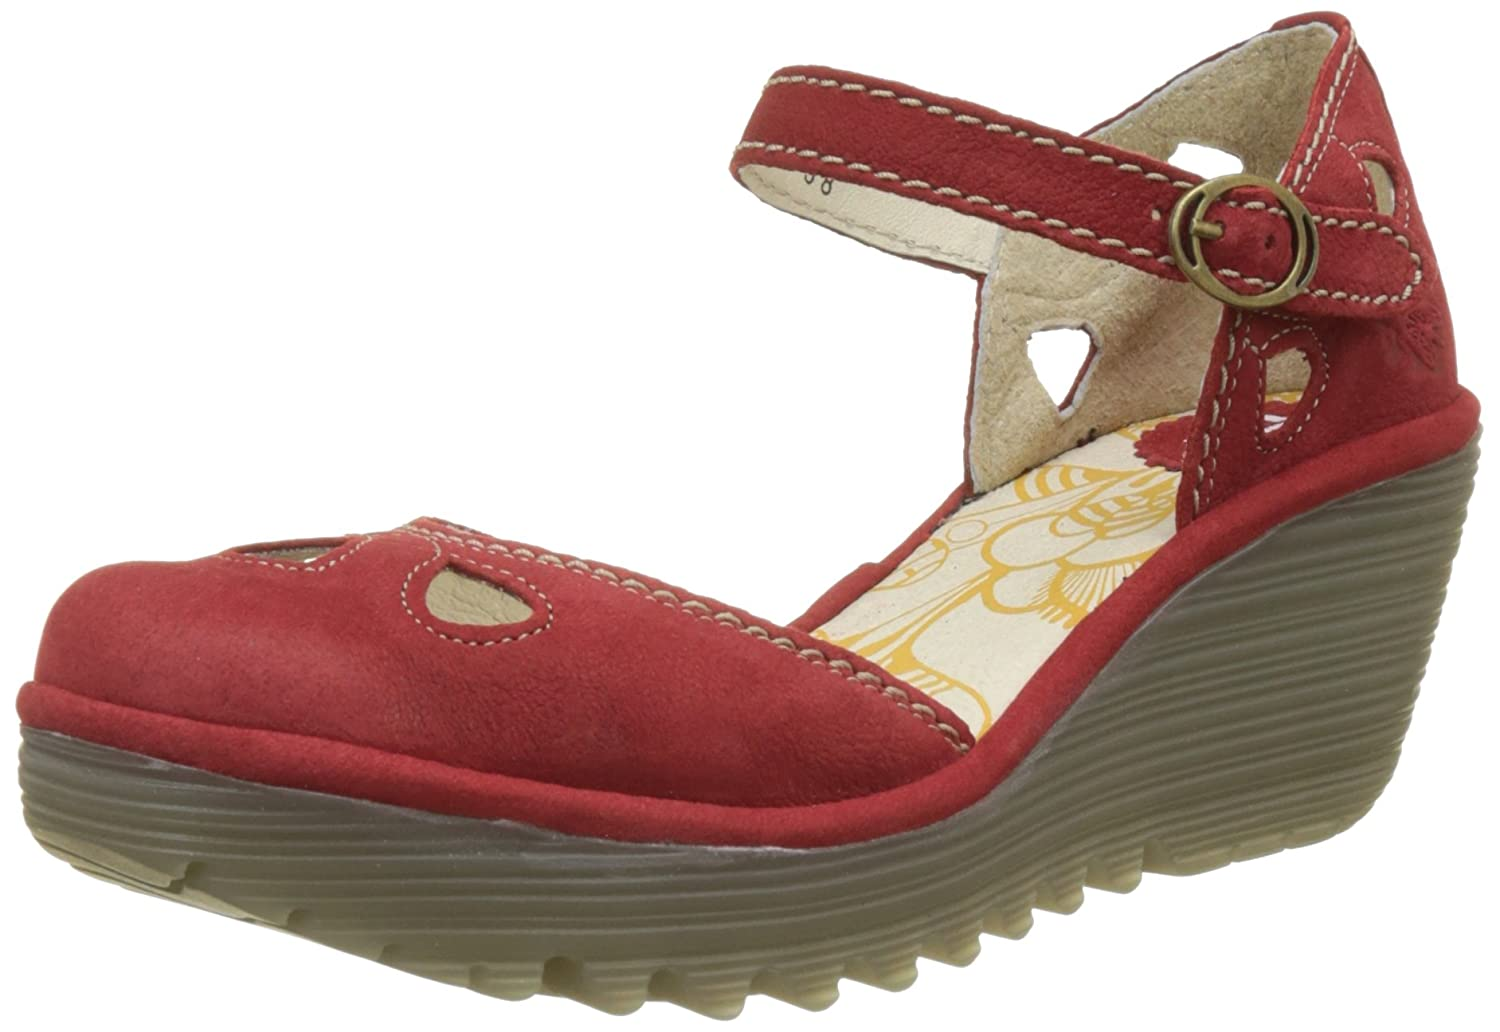 Womens Fly London Yuna Holiday Suede Summer Strappy Sandals Wedge Heel B077C5BMMR 39 M EU|Red